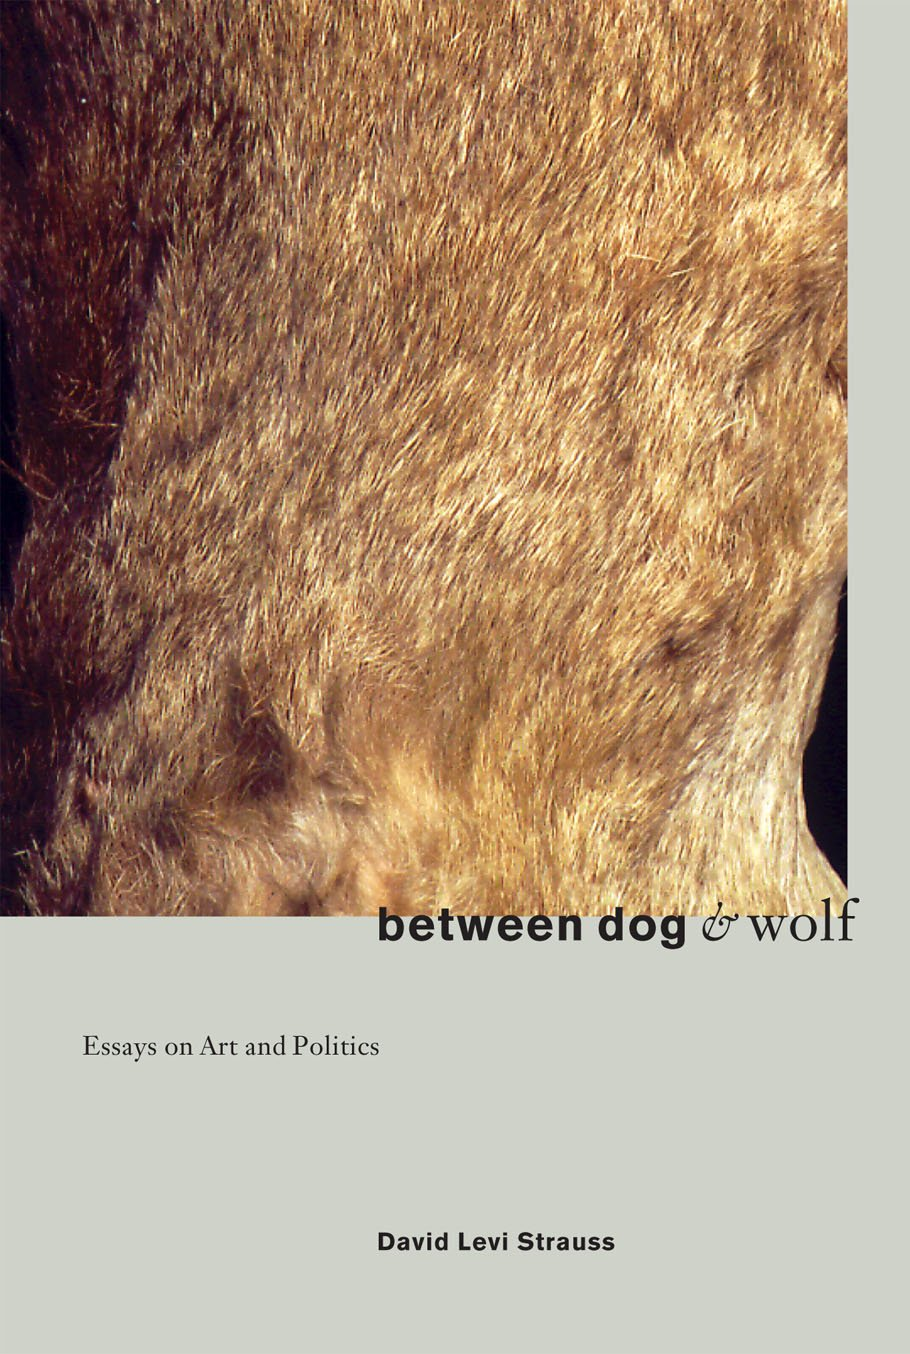 between dog and wolf essays on art politics david levi strauss between dog and wolf essays on art politics david levi strauss 9781570270932 com books